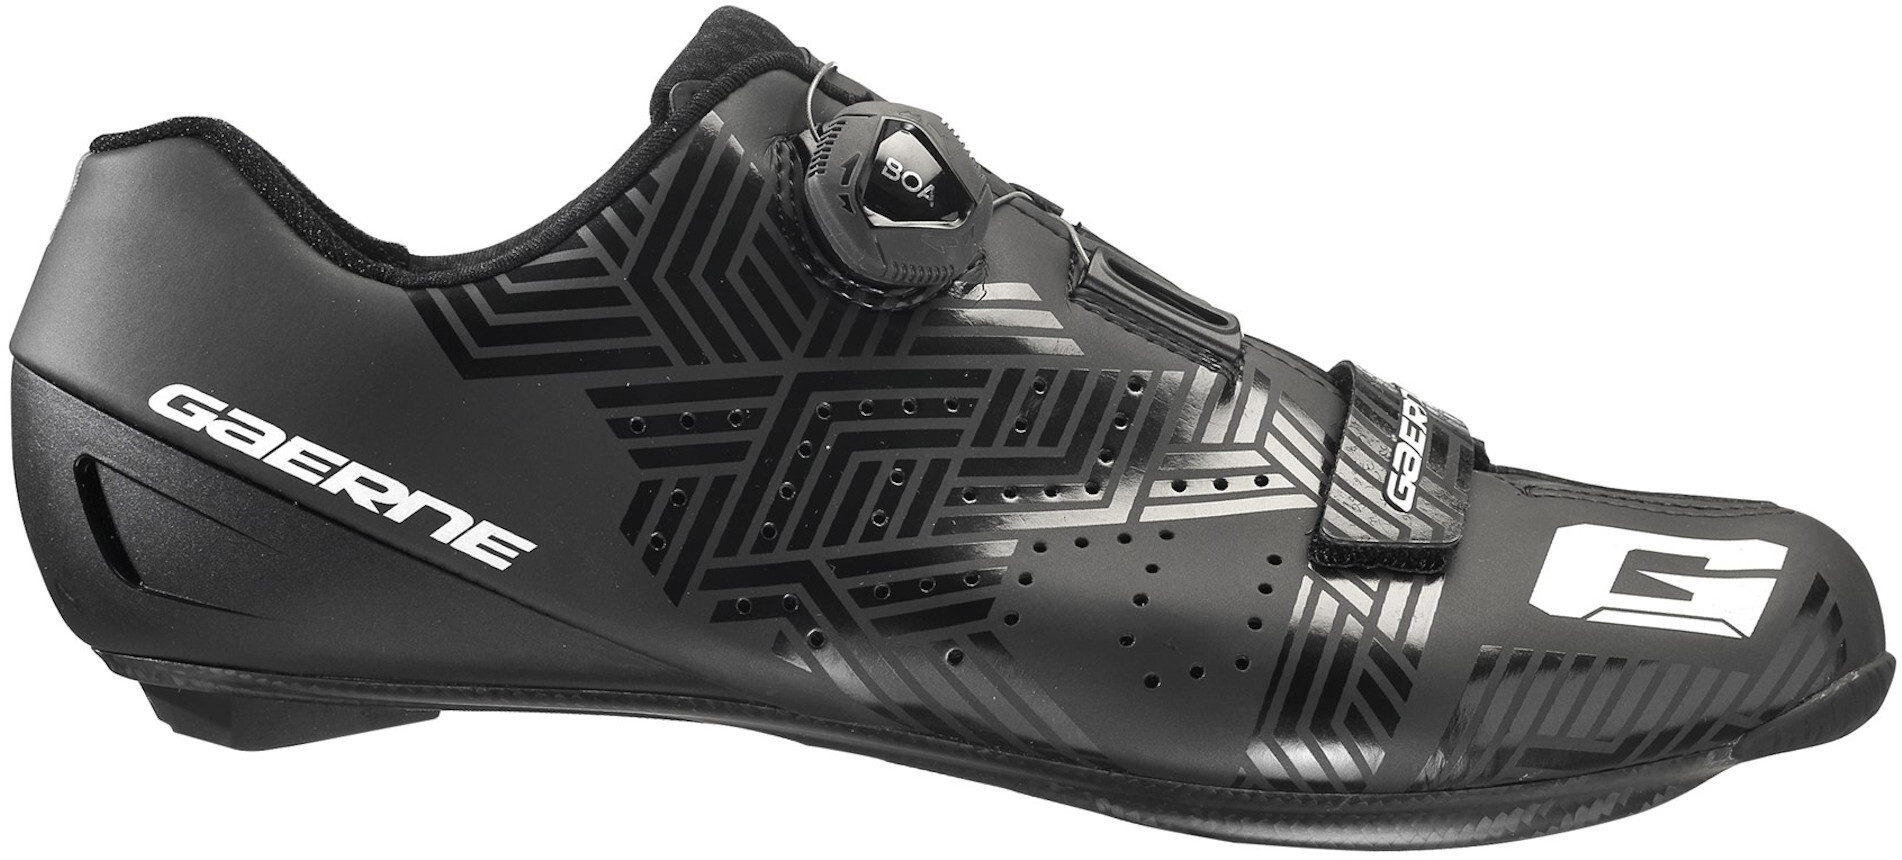 Gaerne Carbon G.Volata Cykelsko Herrer, black (2020) | Shoes and overlays